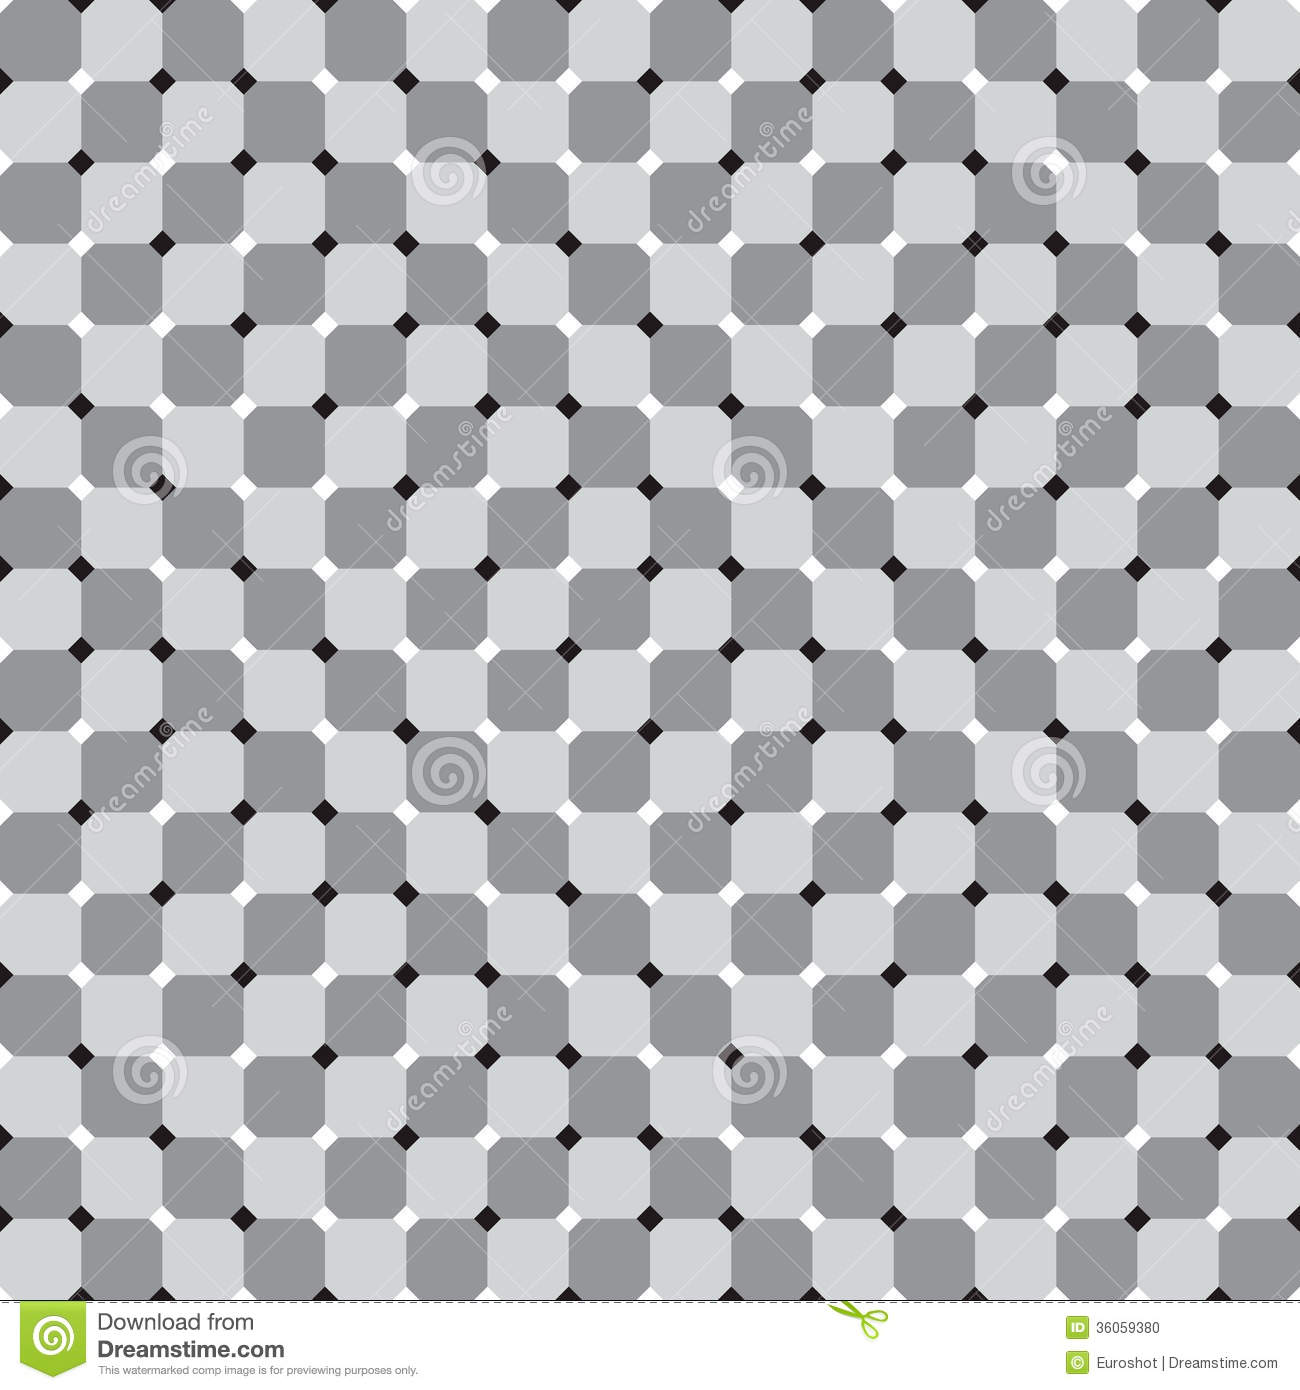 Waving Squares, Black and White Optical Illusion Vector Seamless